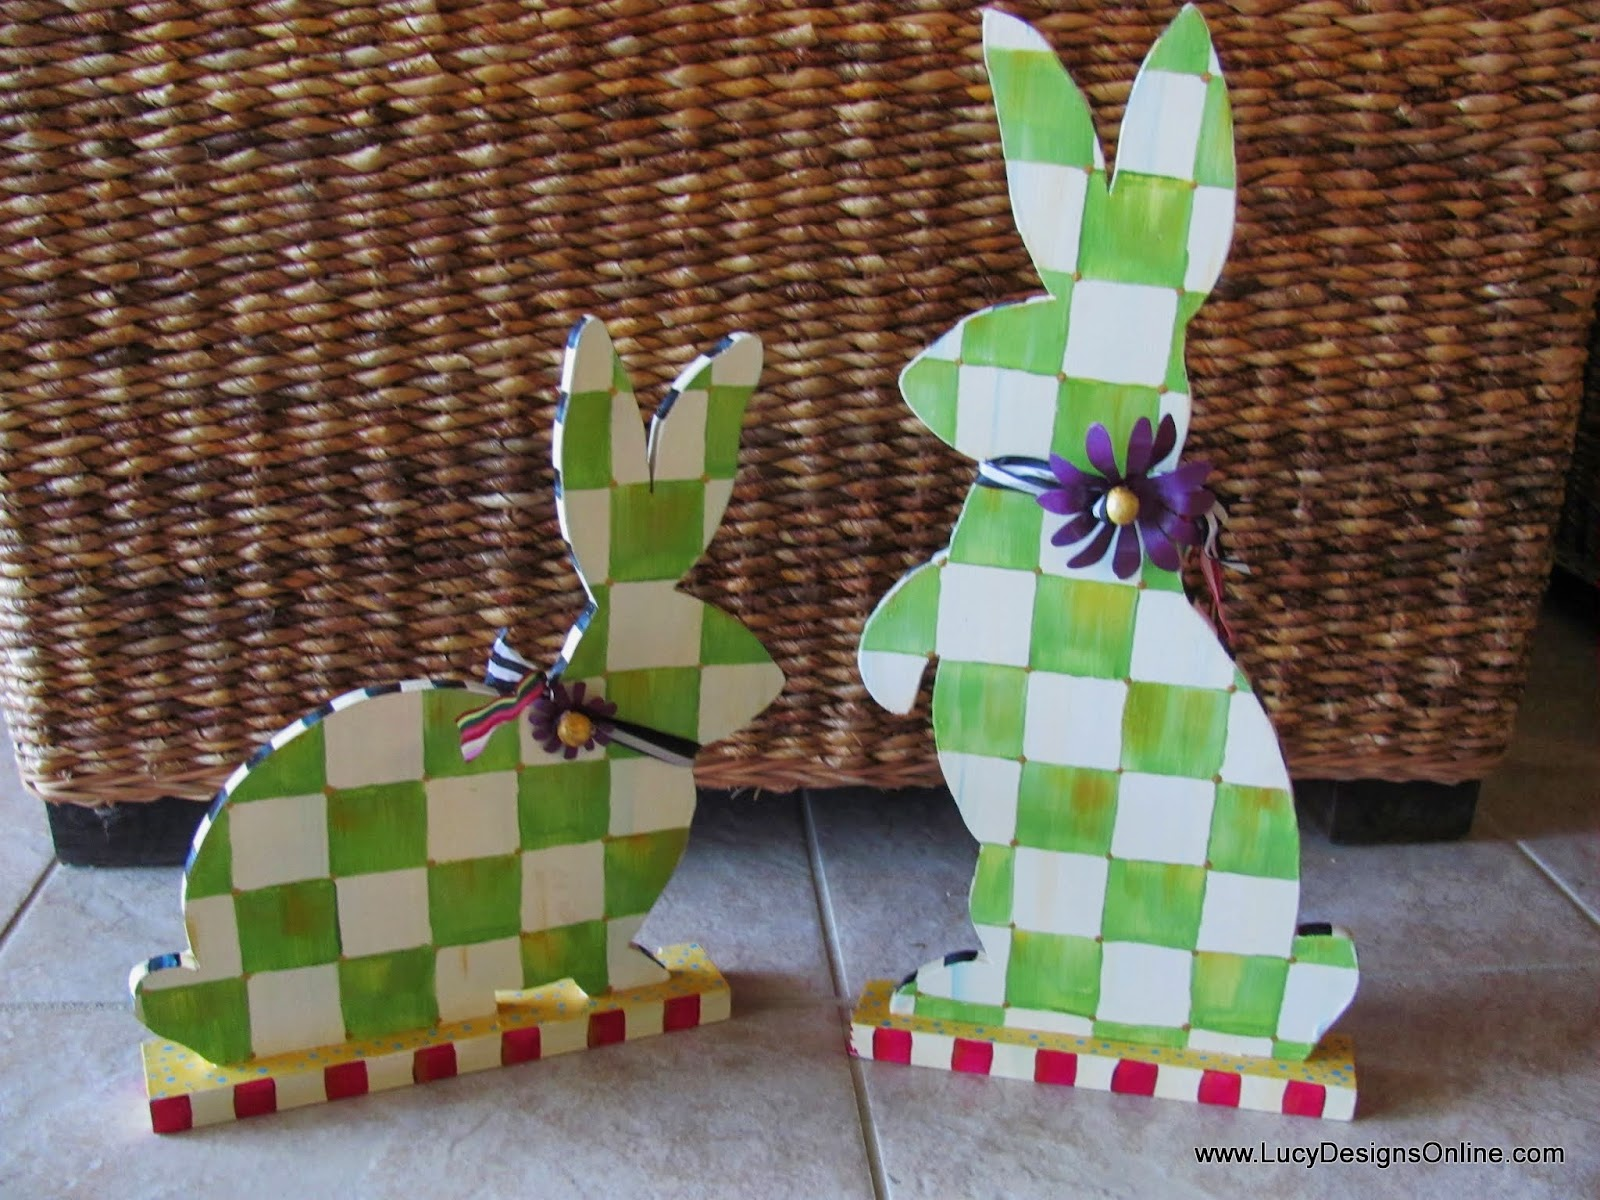 hand painted green and white checked bunny rabbit sculpture